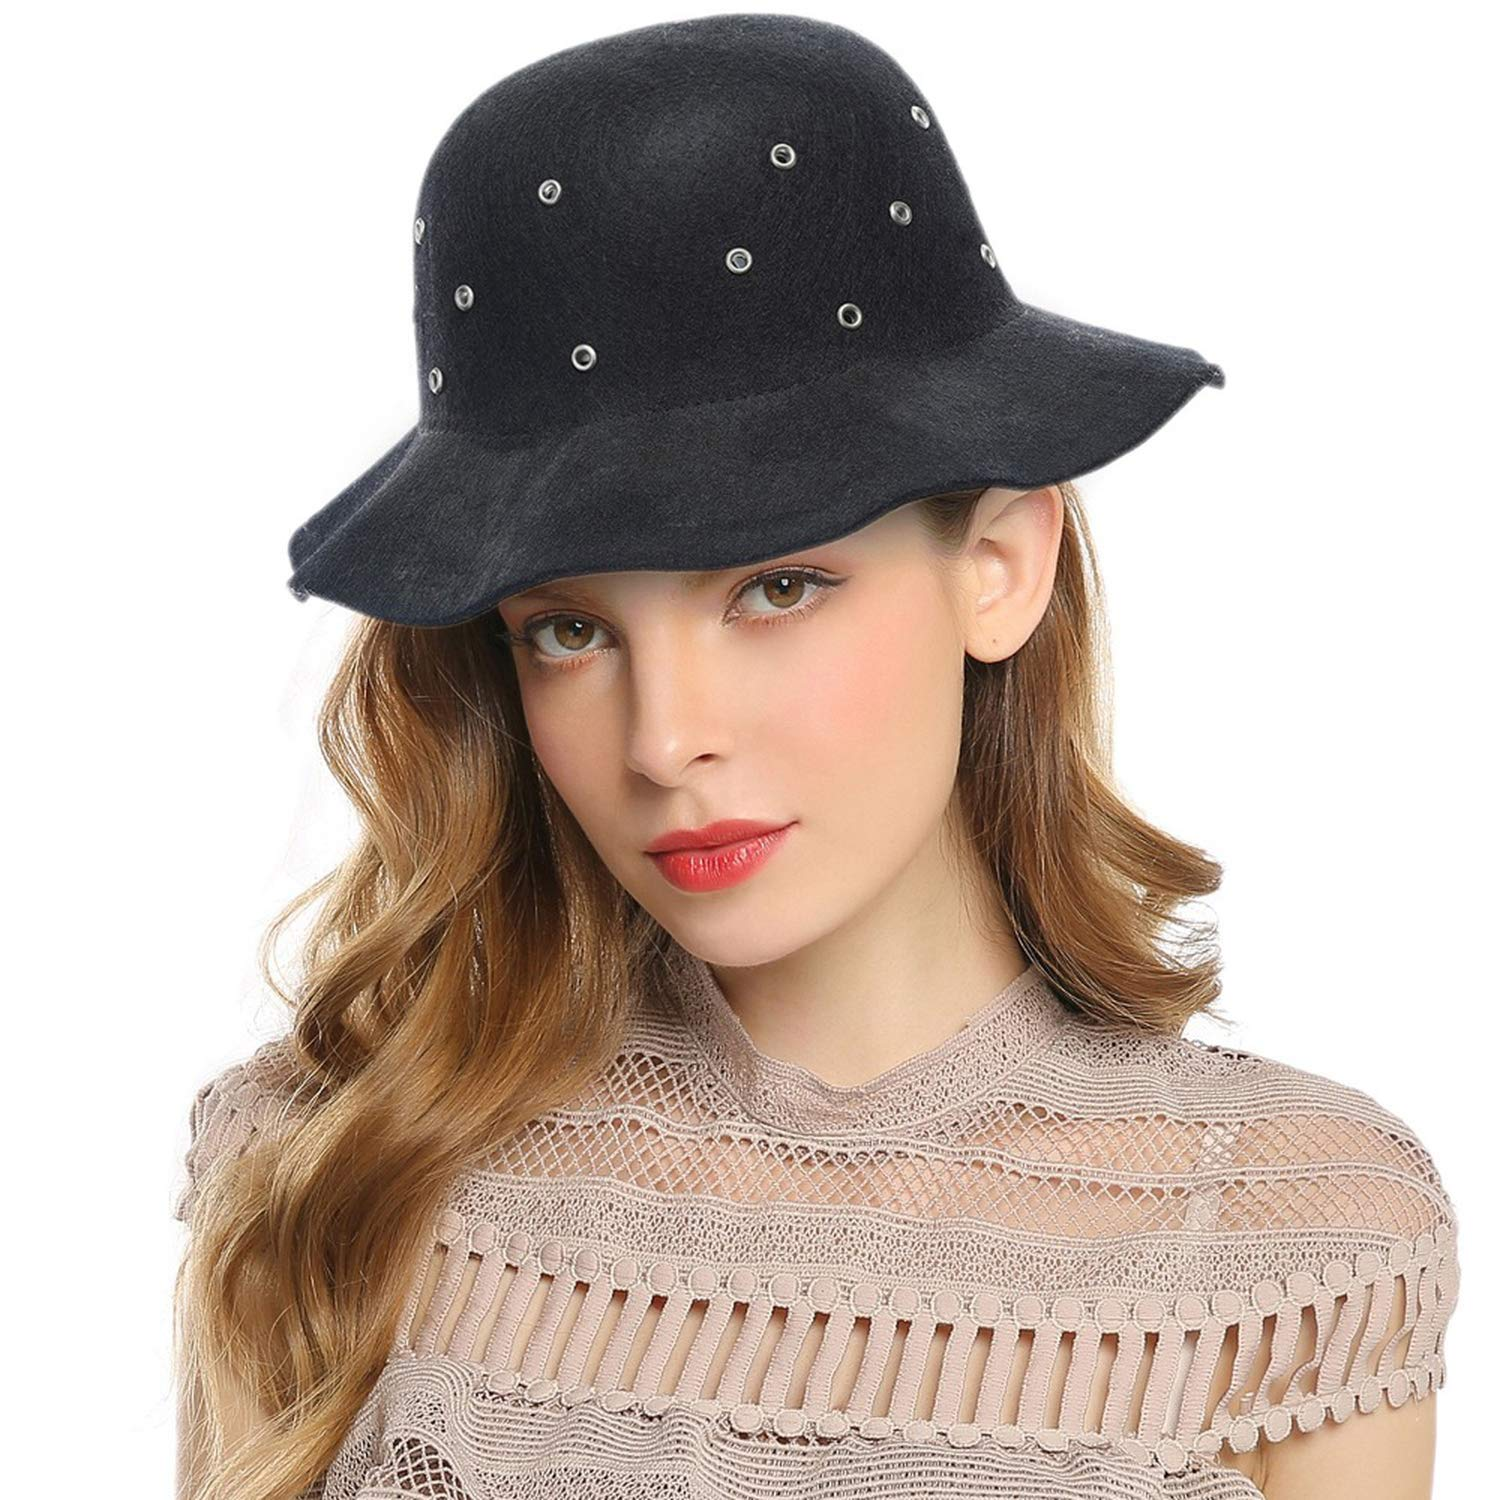 Women Fedoras Soft Ruffles Wide Brim Bucket Hats Women Autumn Winter Wind-Proof Breathable Church Hats